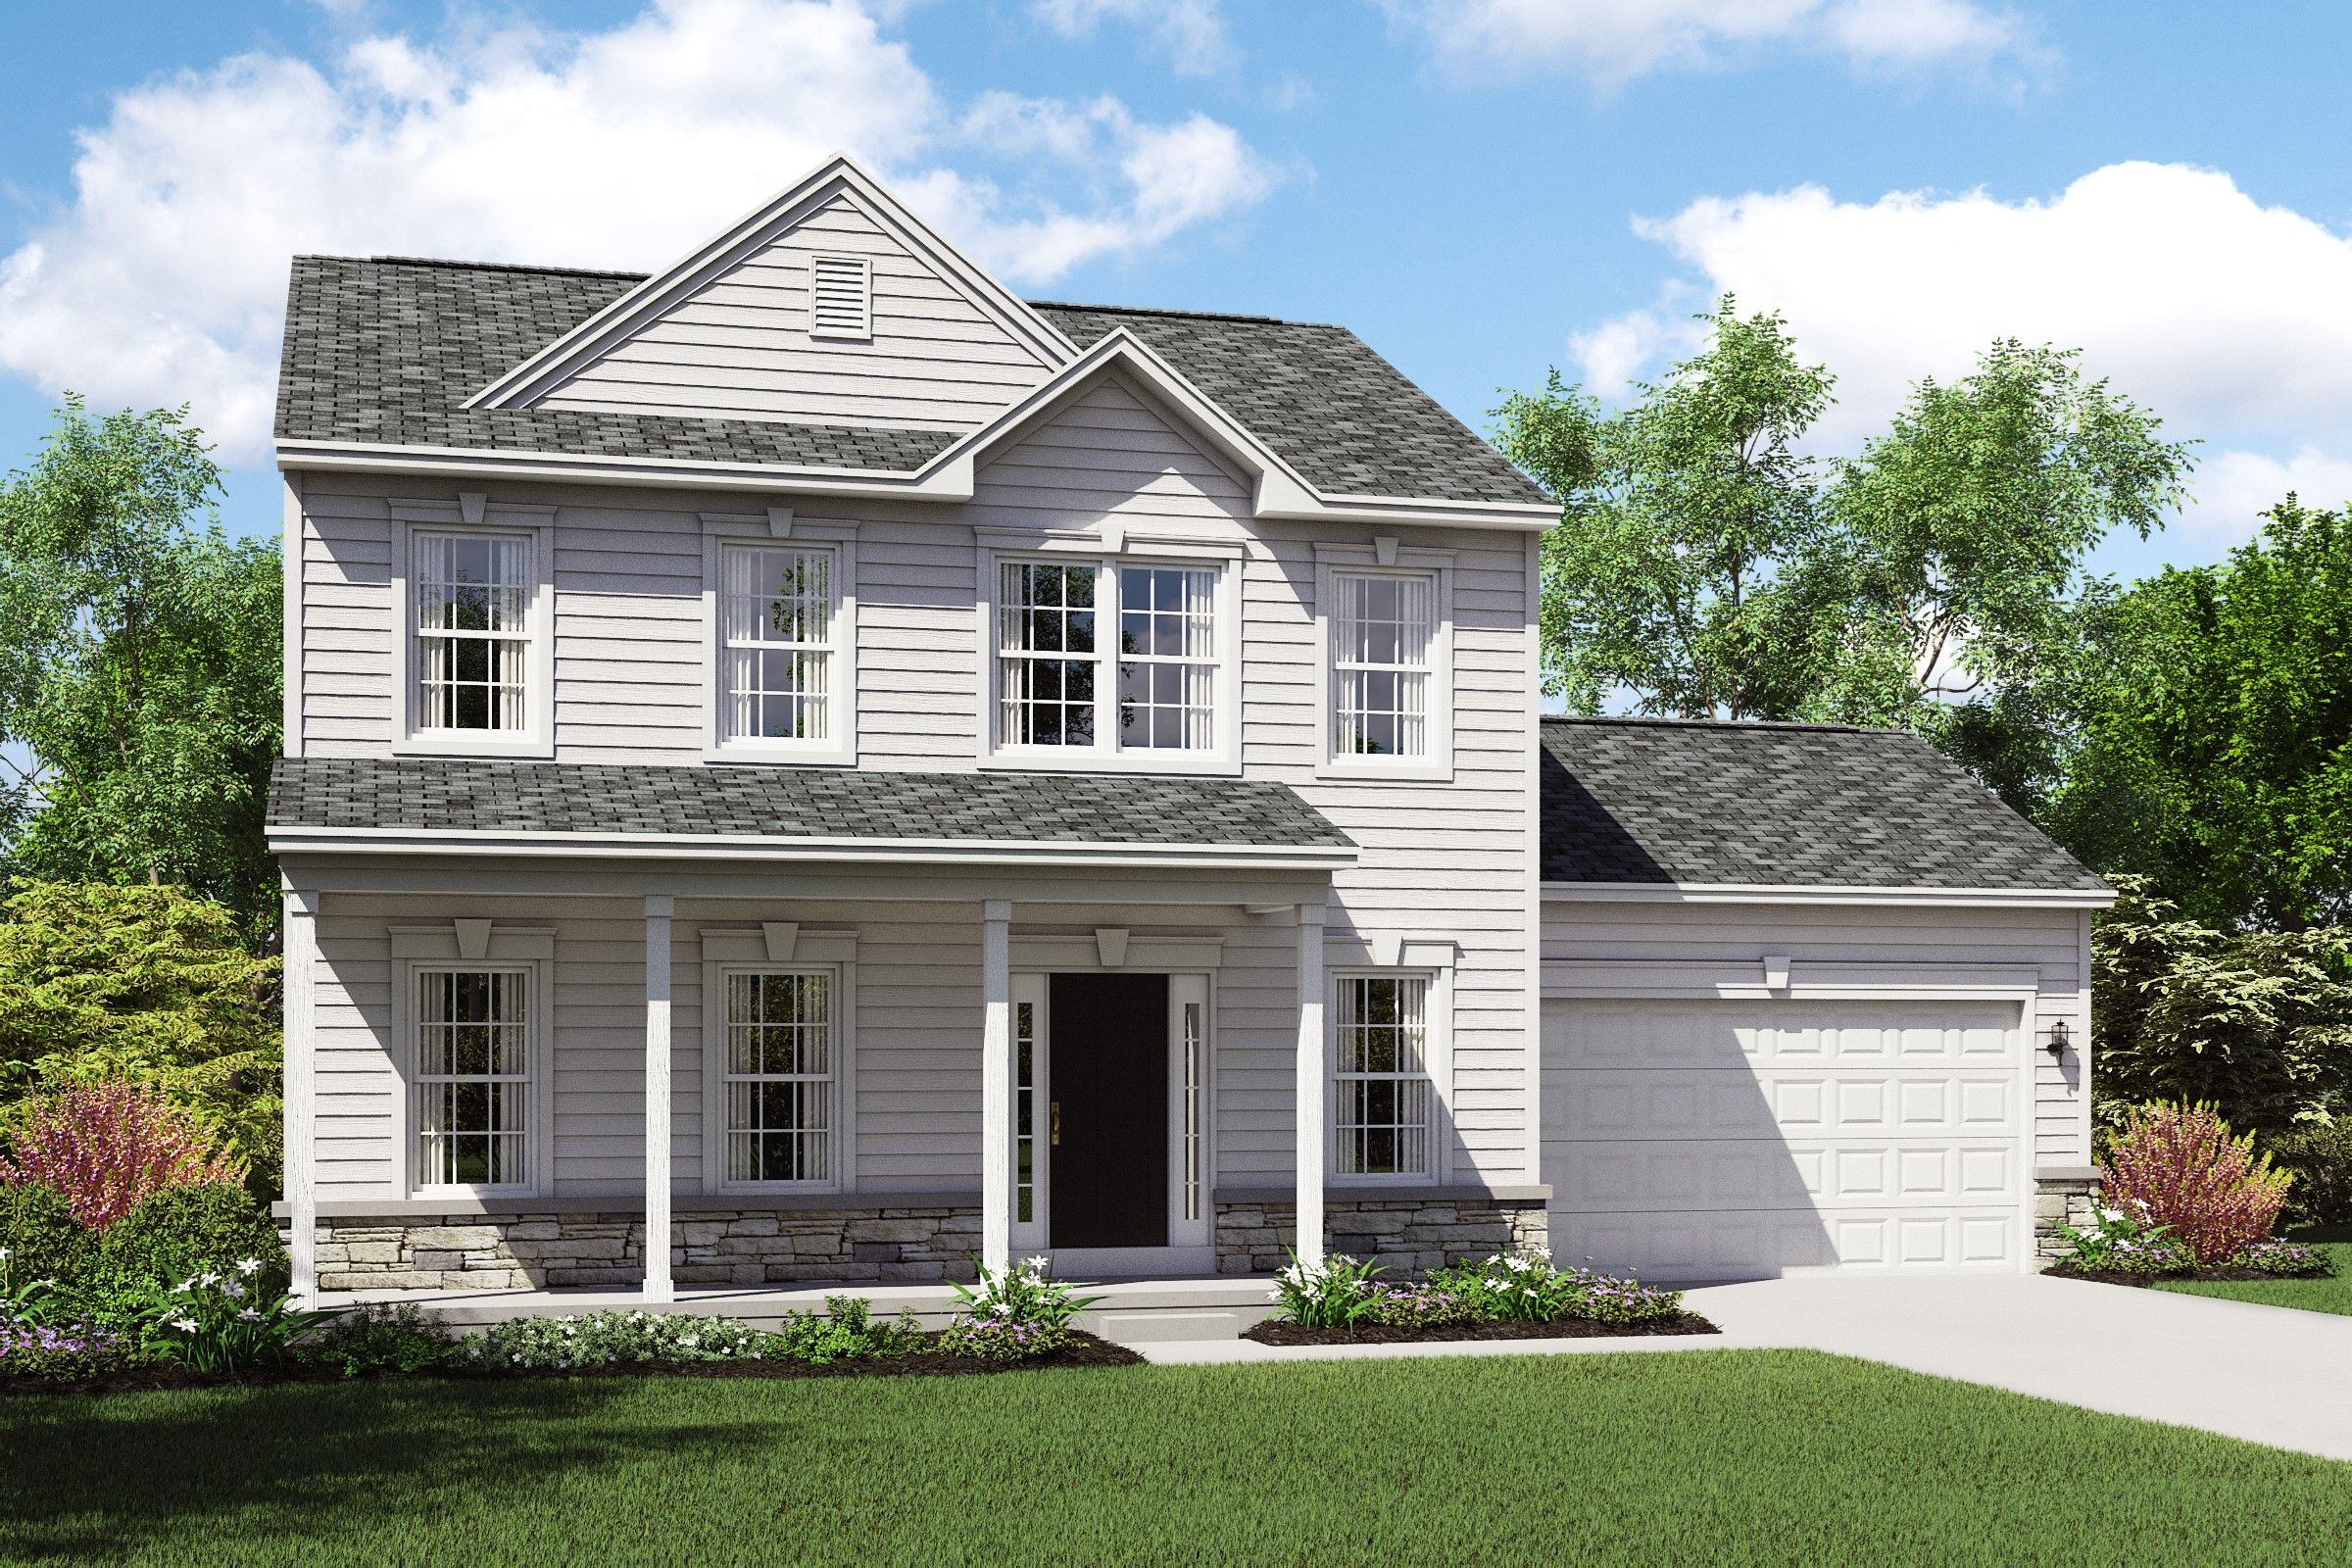 New Construction Homes & Plans in Solon, OH   612 Homes   NewHomeSource